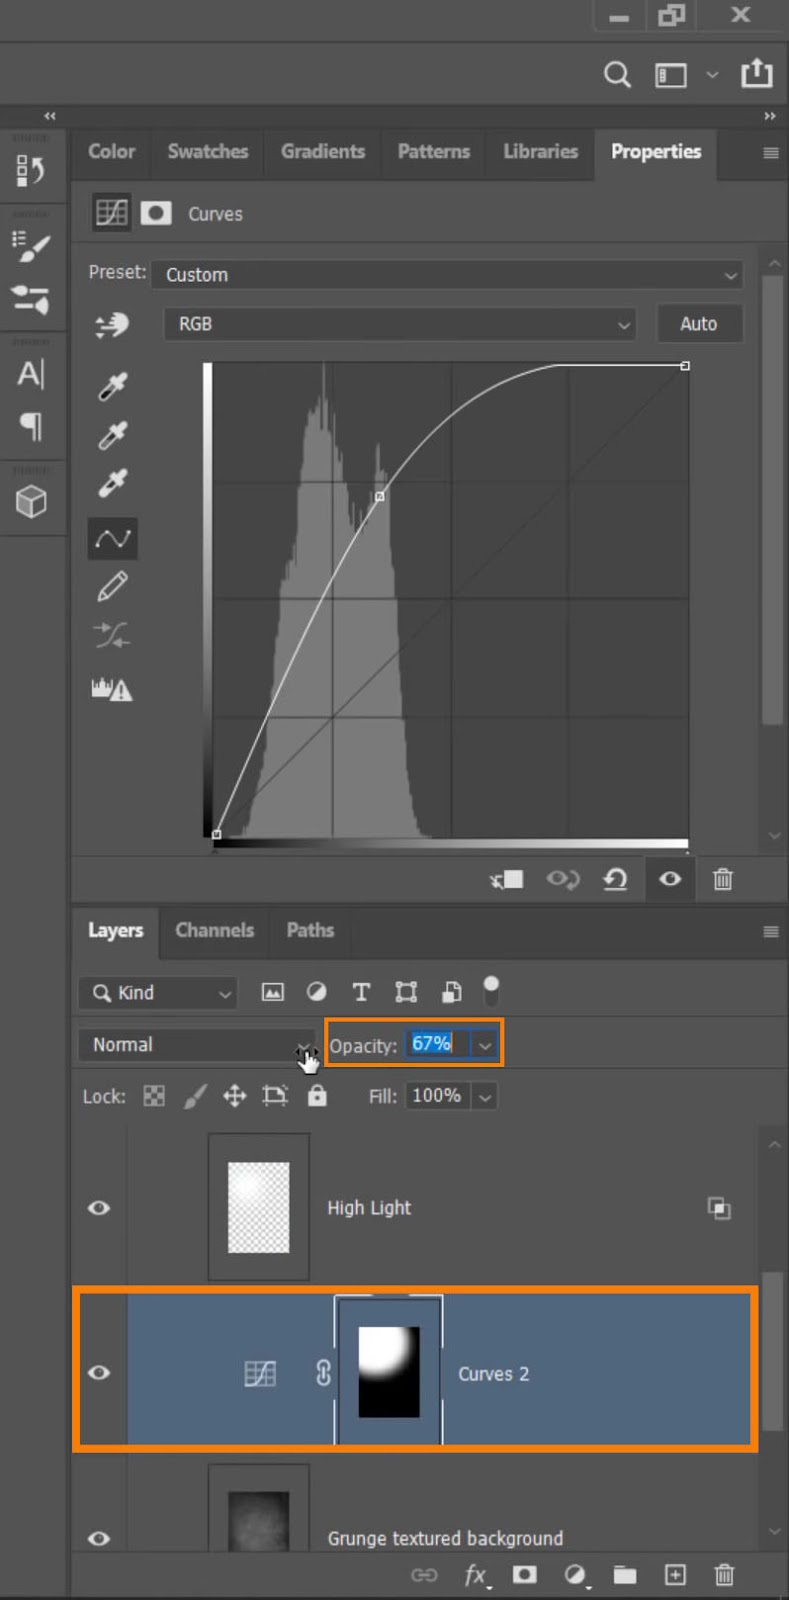 Reduce the Opacity value